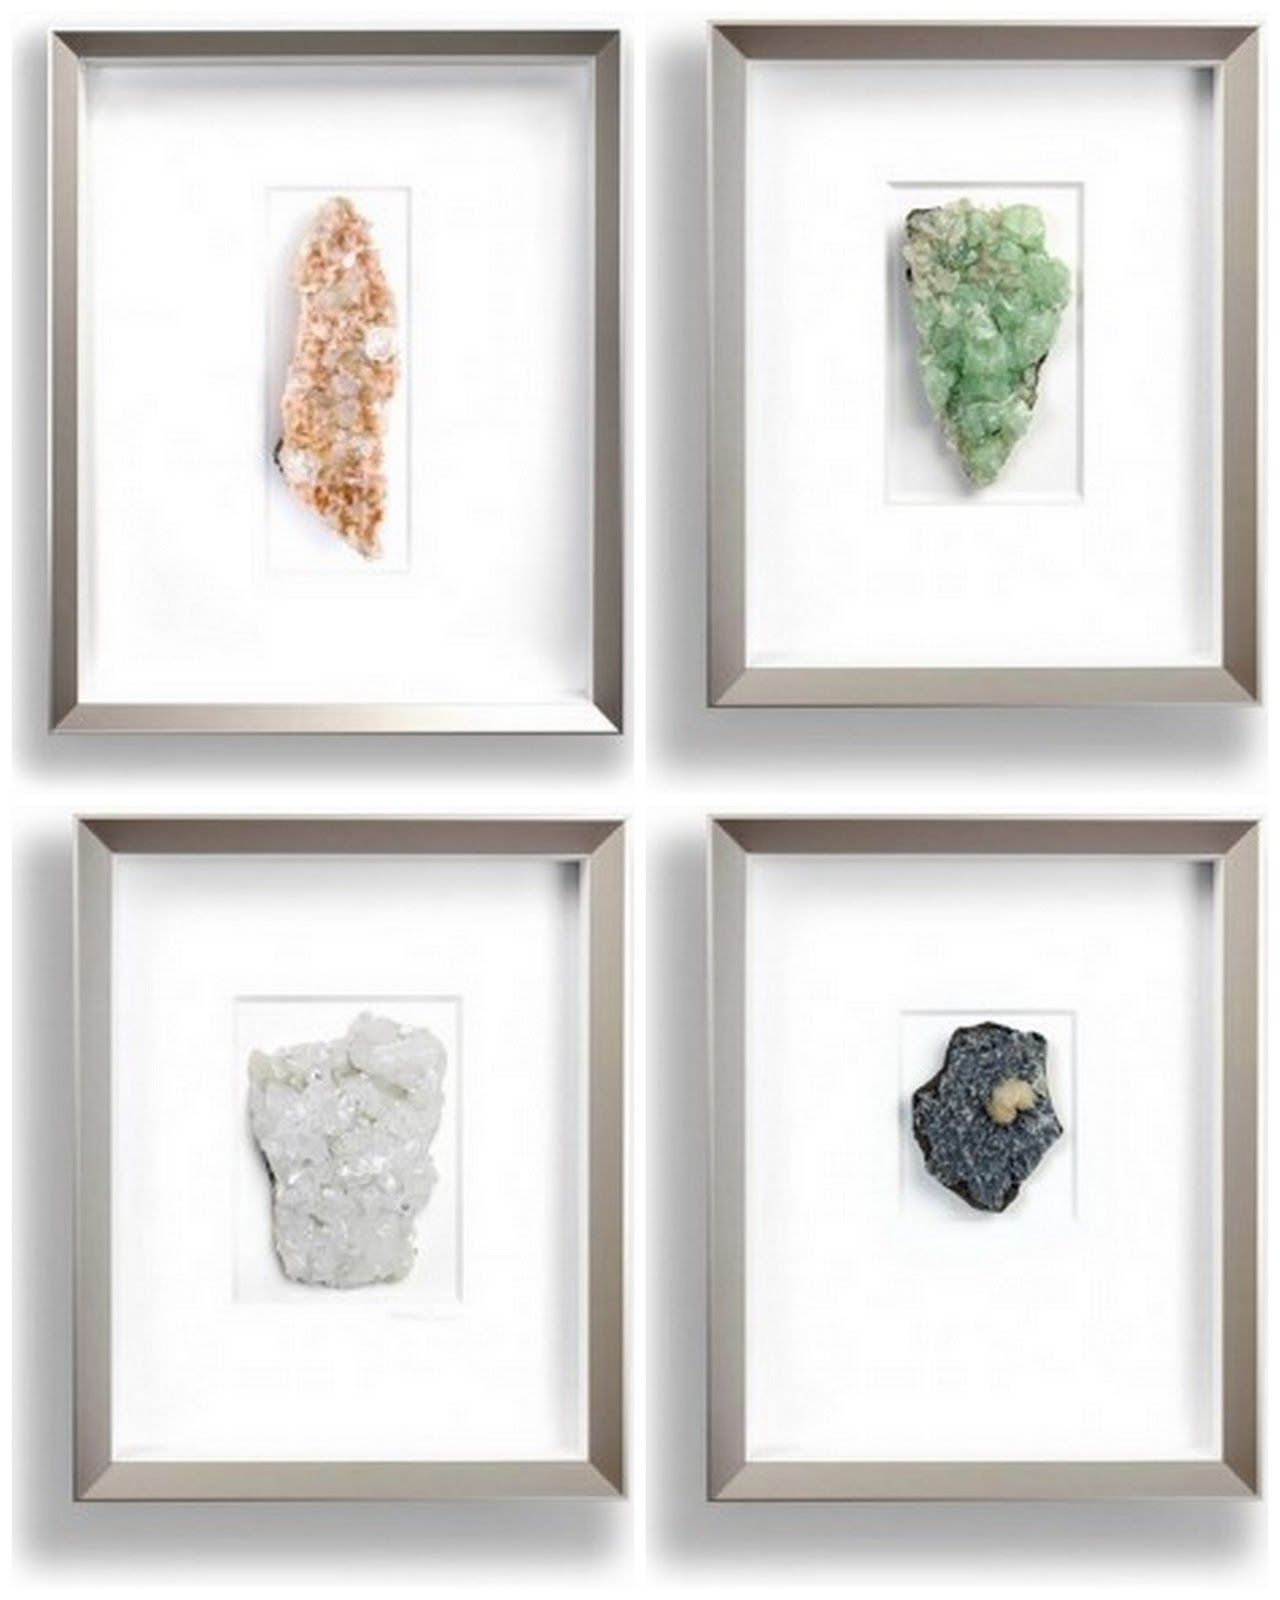 Parlour Framed Minerals Jewelry Display Cards Crystal Decor Tropical Design